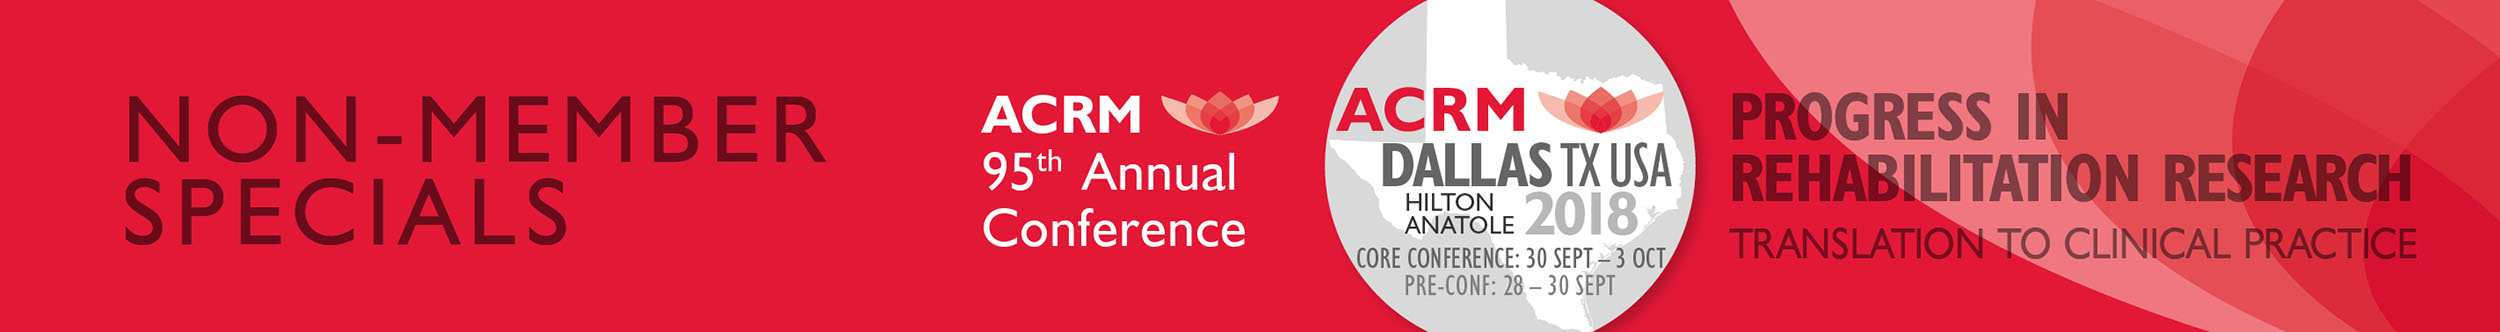 Non-Member Specials ACRM Annual Conference 2018 Dallas